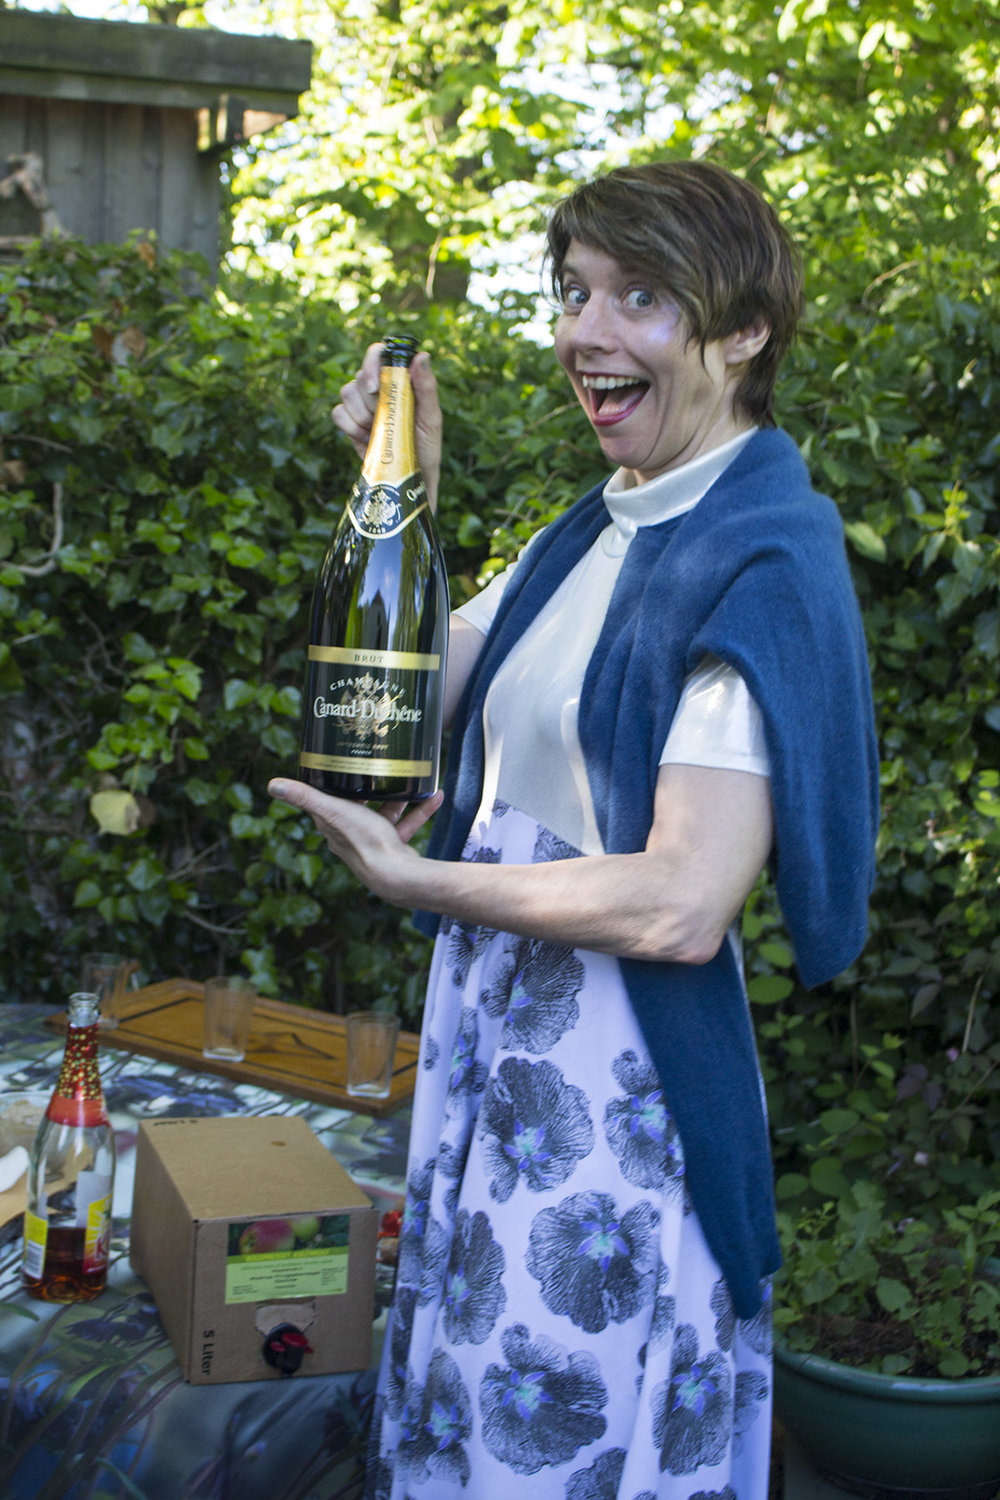 This is also me, celebrating mid-May 2017 in my mother's garden on Samsø, wearing the  Bente gown . I don't know that I'd always style it with a wool sweater and a magnum Canard-Duchêne (assume, um, not), but Denmark can be sort of chilly and who says no to bubbly?! Don't judge.